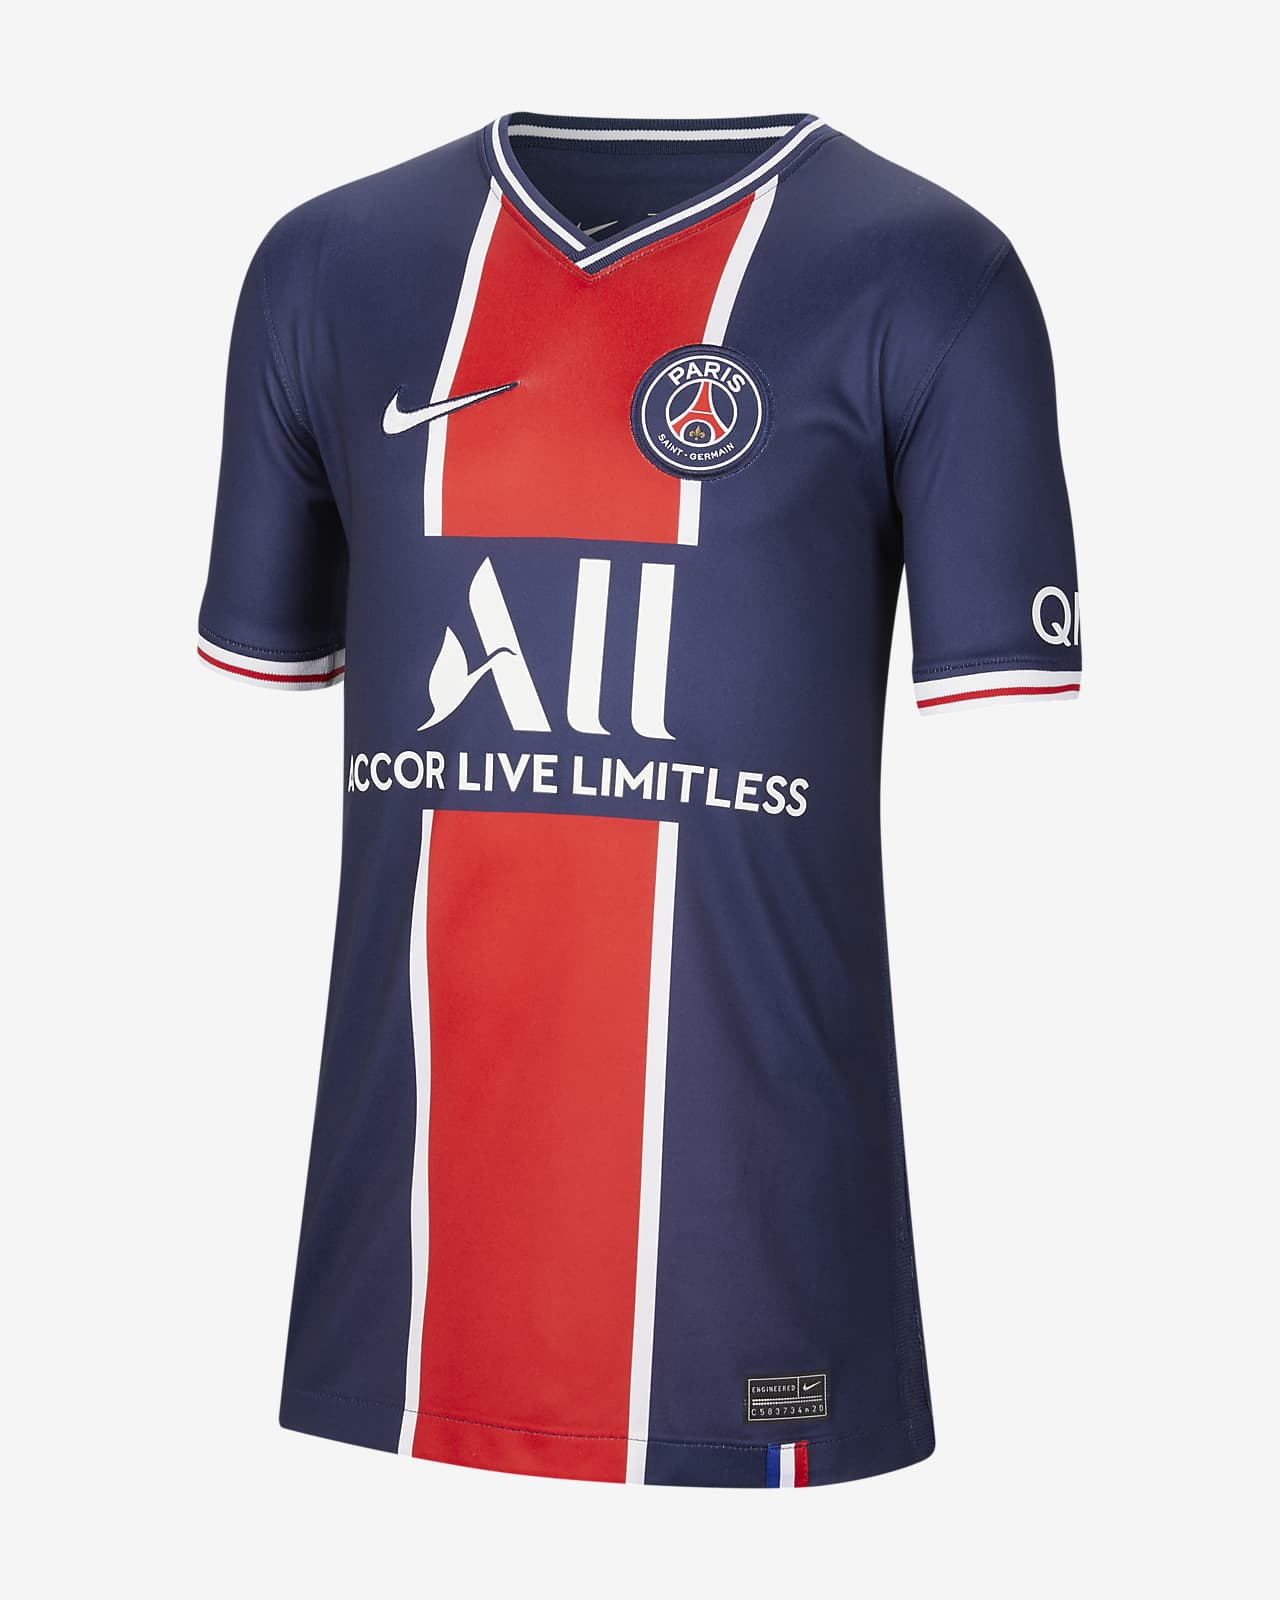 Camiseta de fútbol de local para niño talla grande Stadium del Paris Saint-Germain 2020/2021